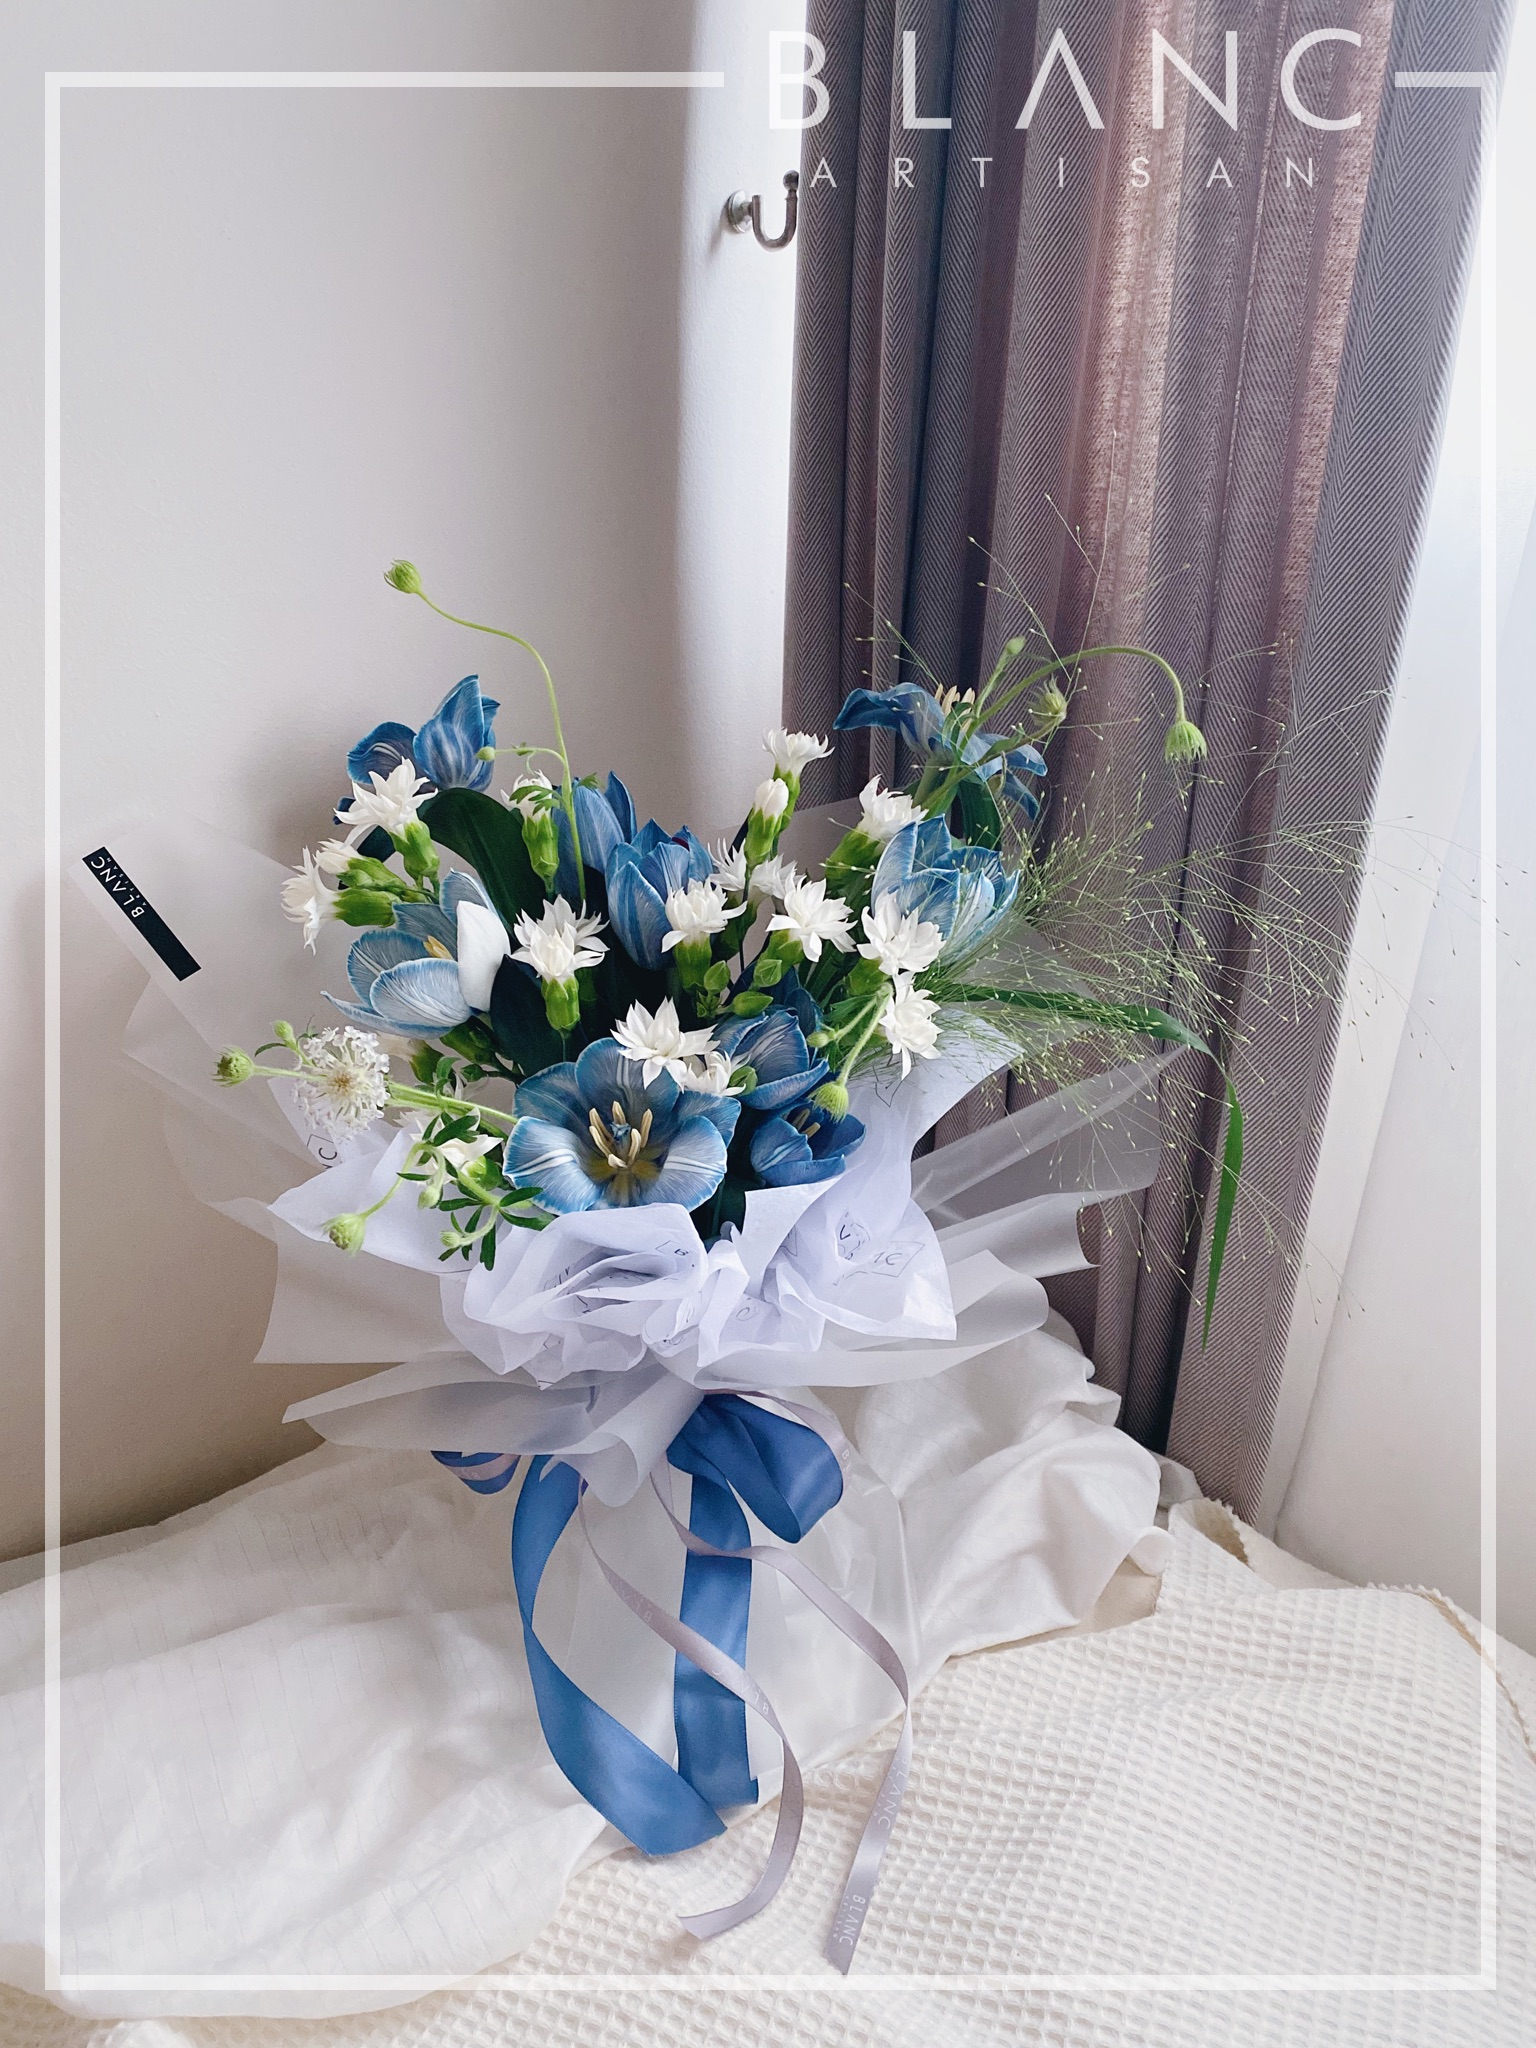 Blue Tulips Bouquet Delivery Singapore 24 Hours Online Flower